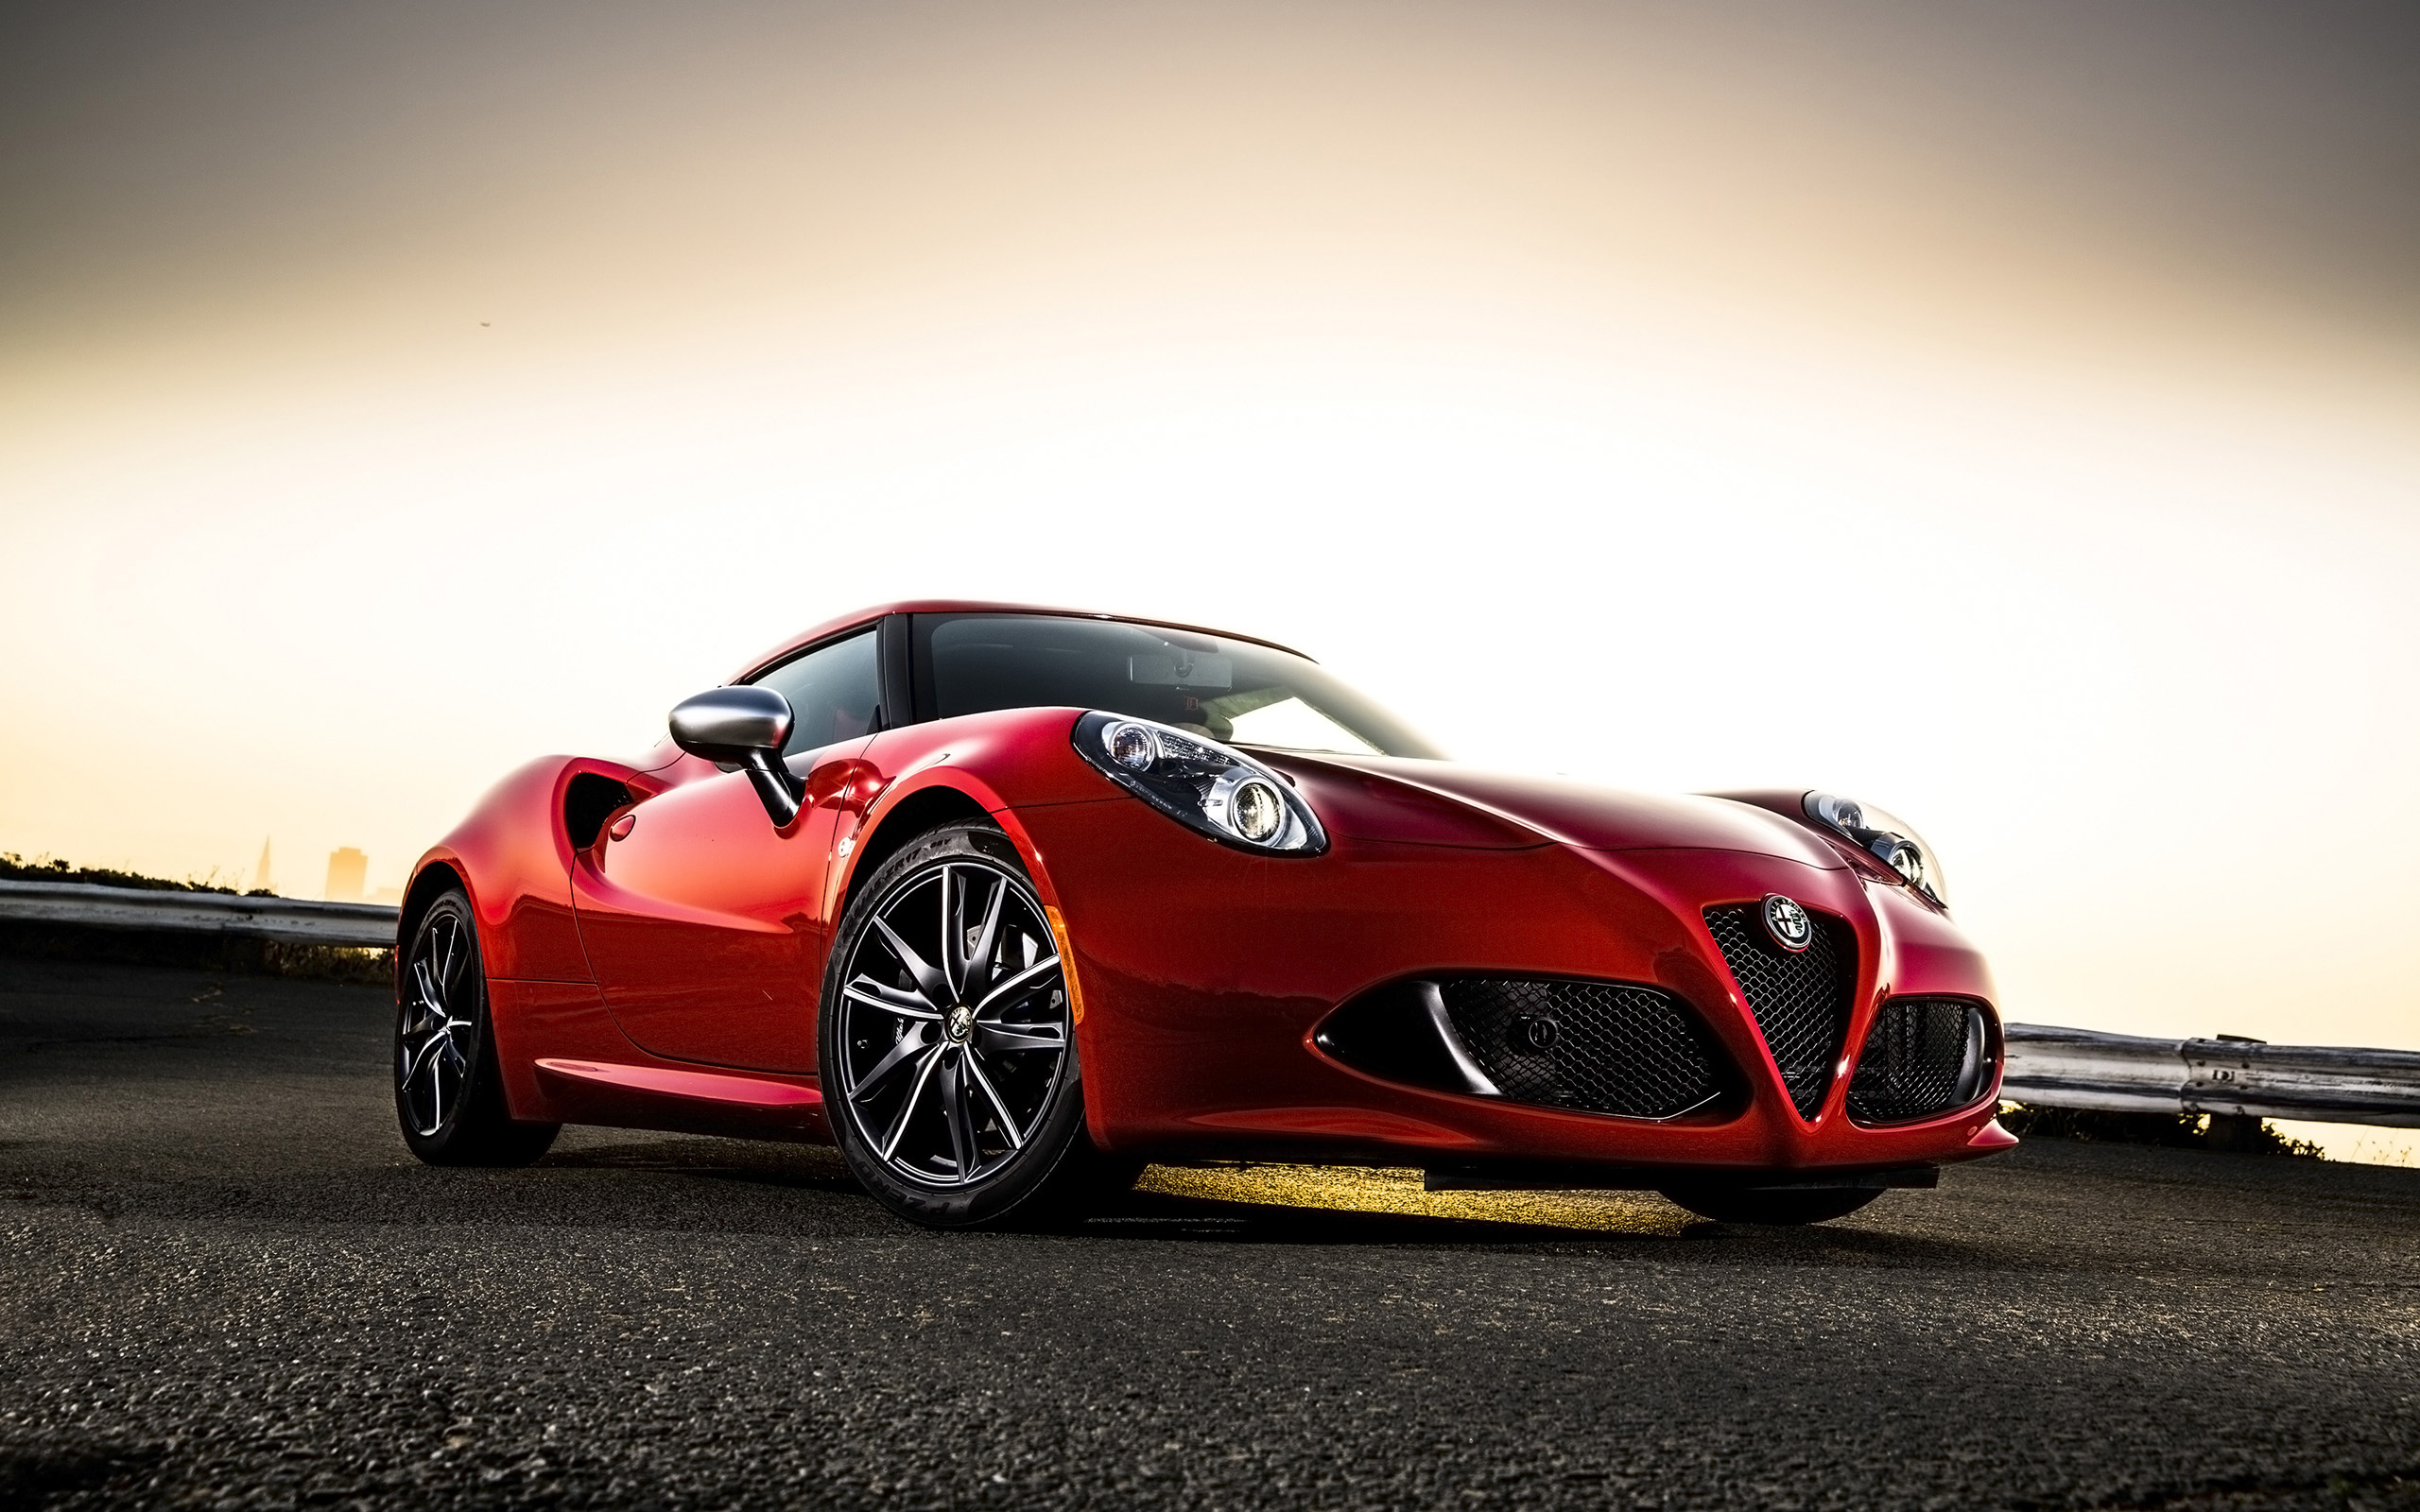 2015 alfa romeo 4c wallpaper hd car wallpapers id 4632. Black Bedroom Furniture Sets. Home Design Ideas